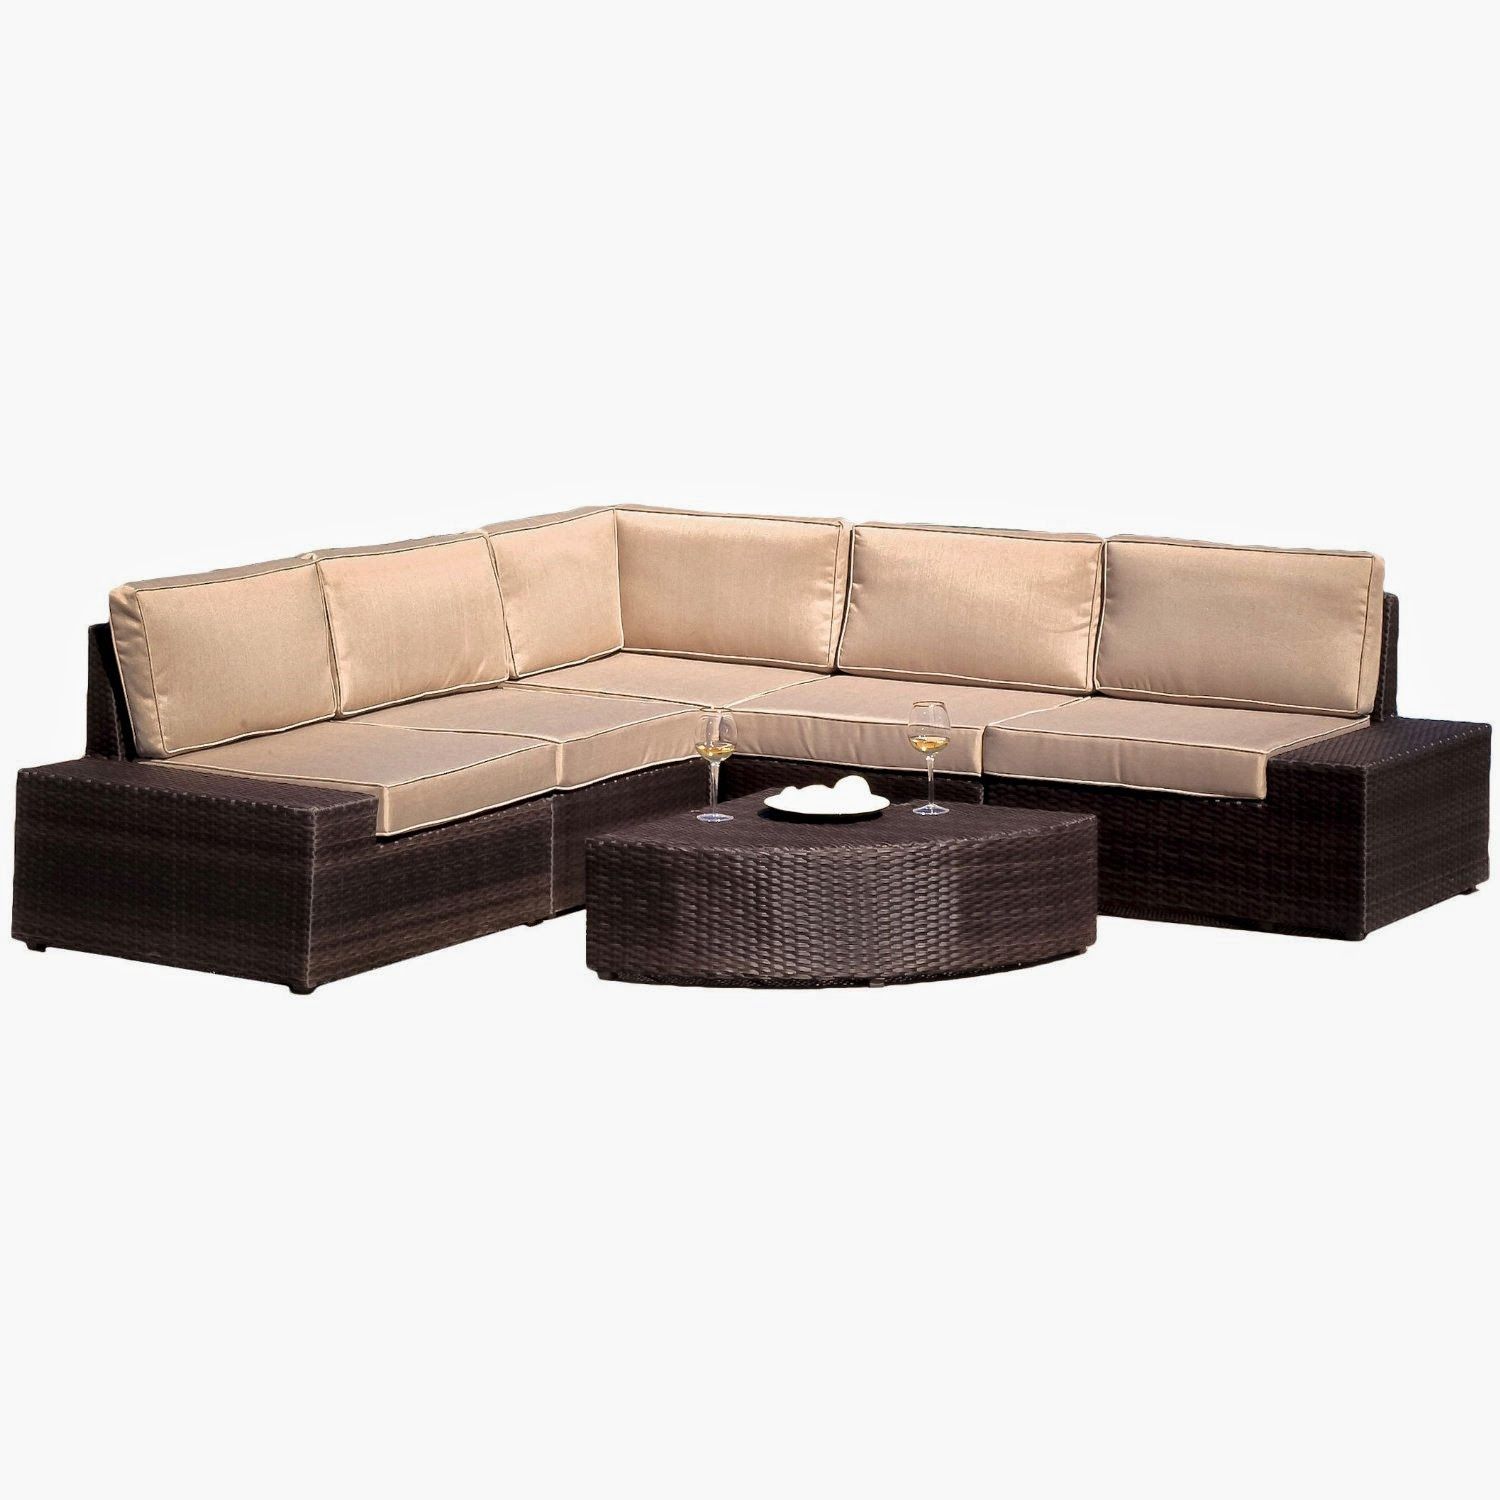 Best selling say brook pe wicker sofa set outdoor patio for Best sofa sets